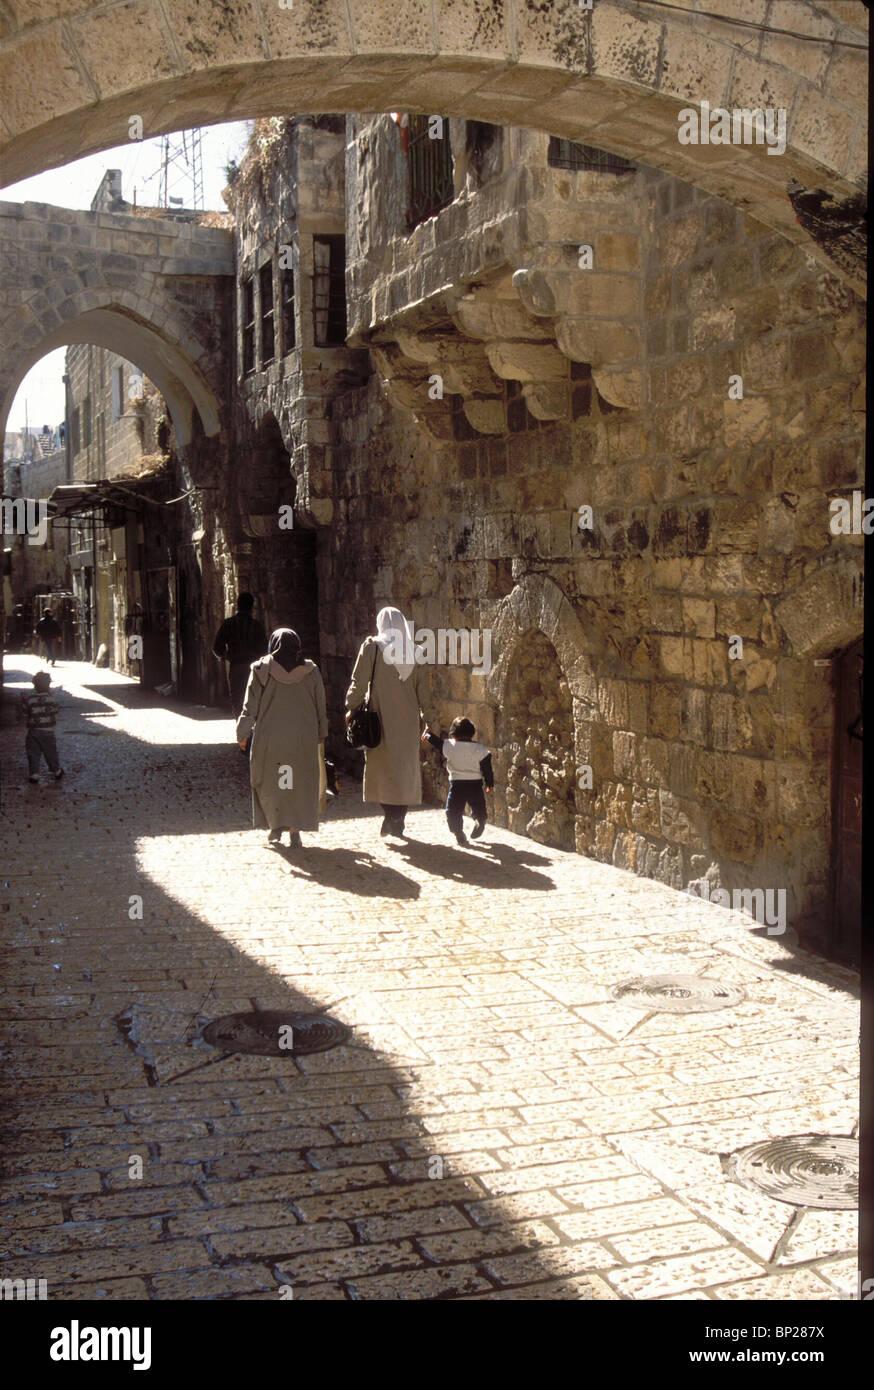 1924. A STREET IN THE OLD CITY OF JERUSALEM WITH TYPICAL OTTOMAN ARCHITECTURE (HAGAY STREET) - Stock Image